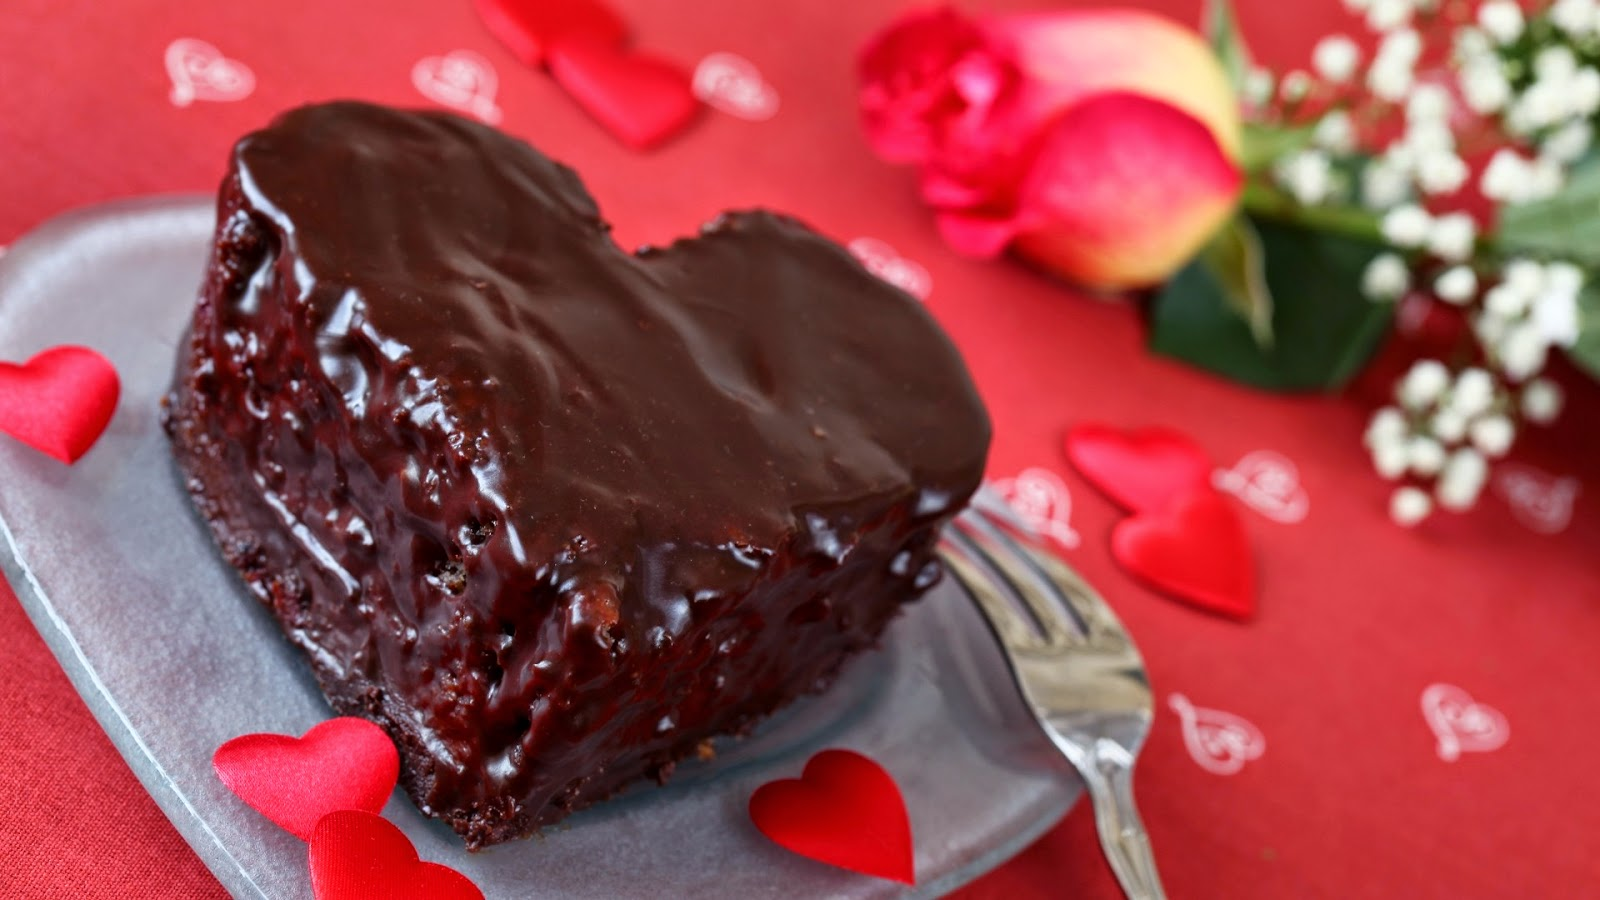 Best Cake Images Download : House Of Wallpapers Free download High Definition ...